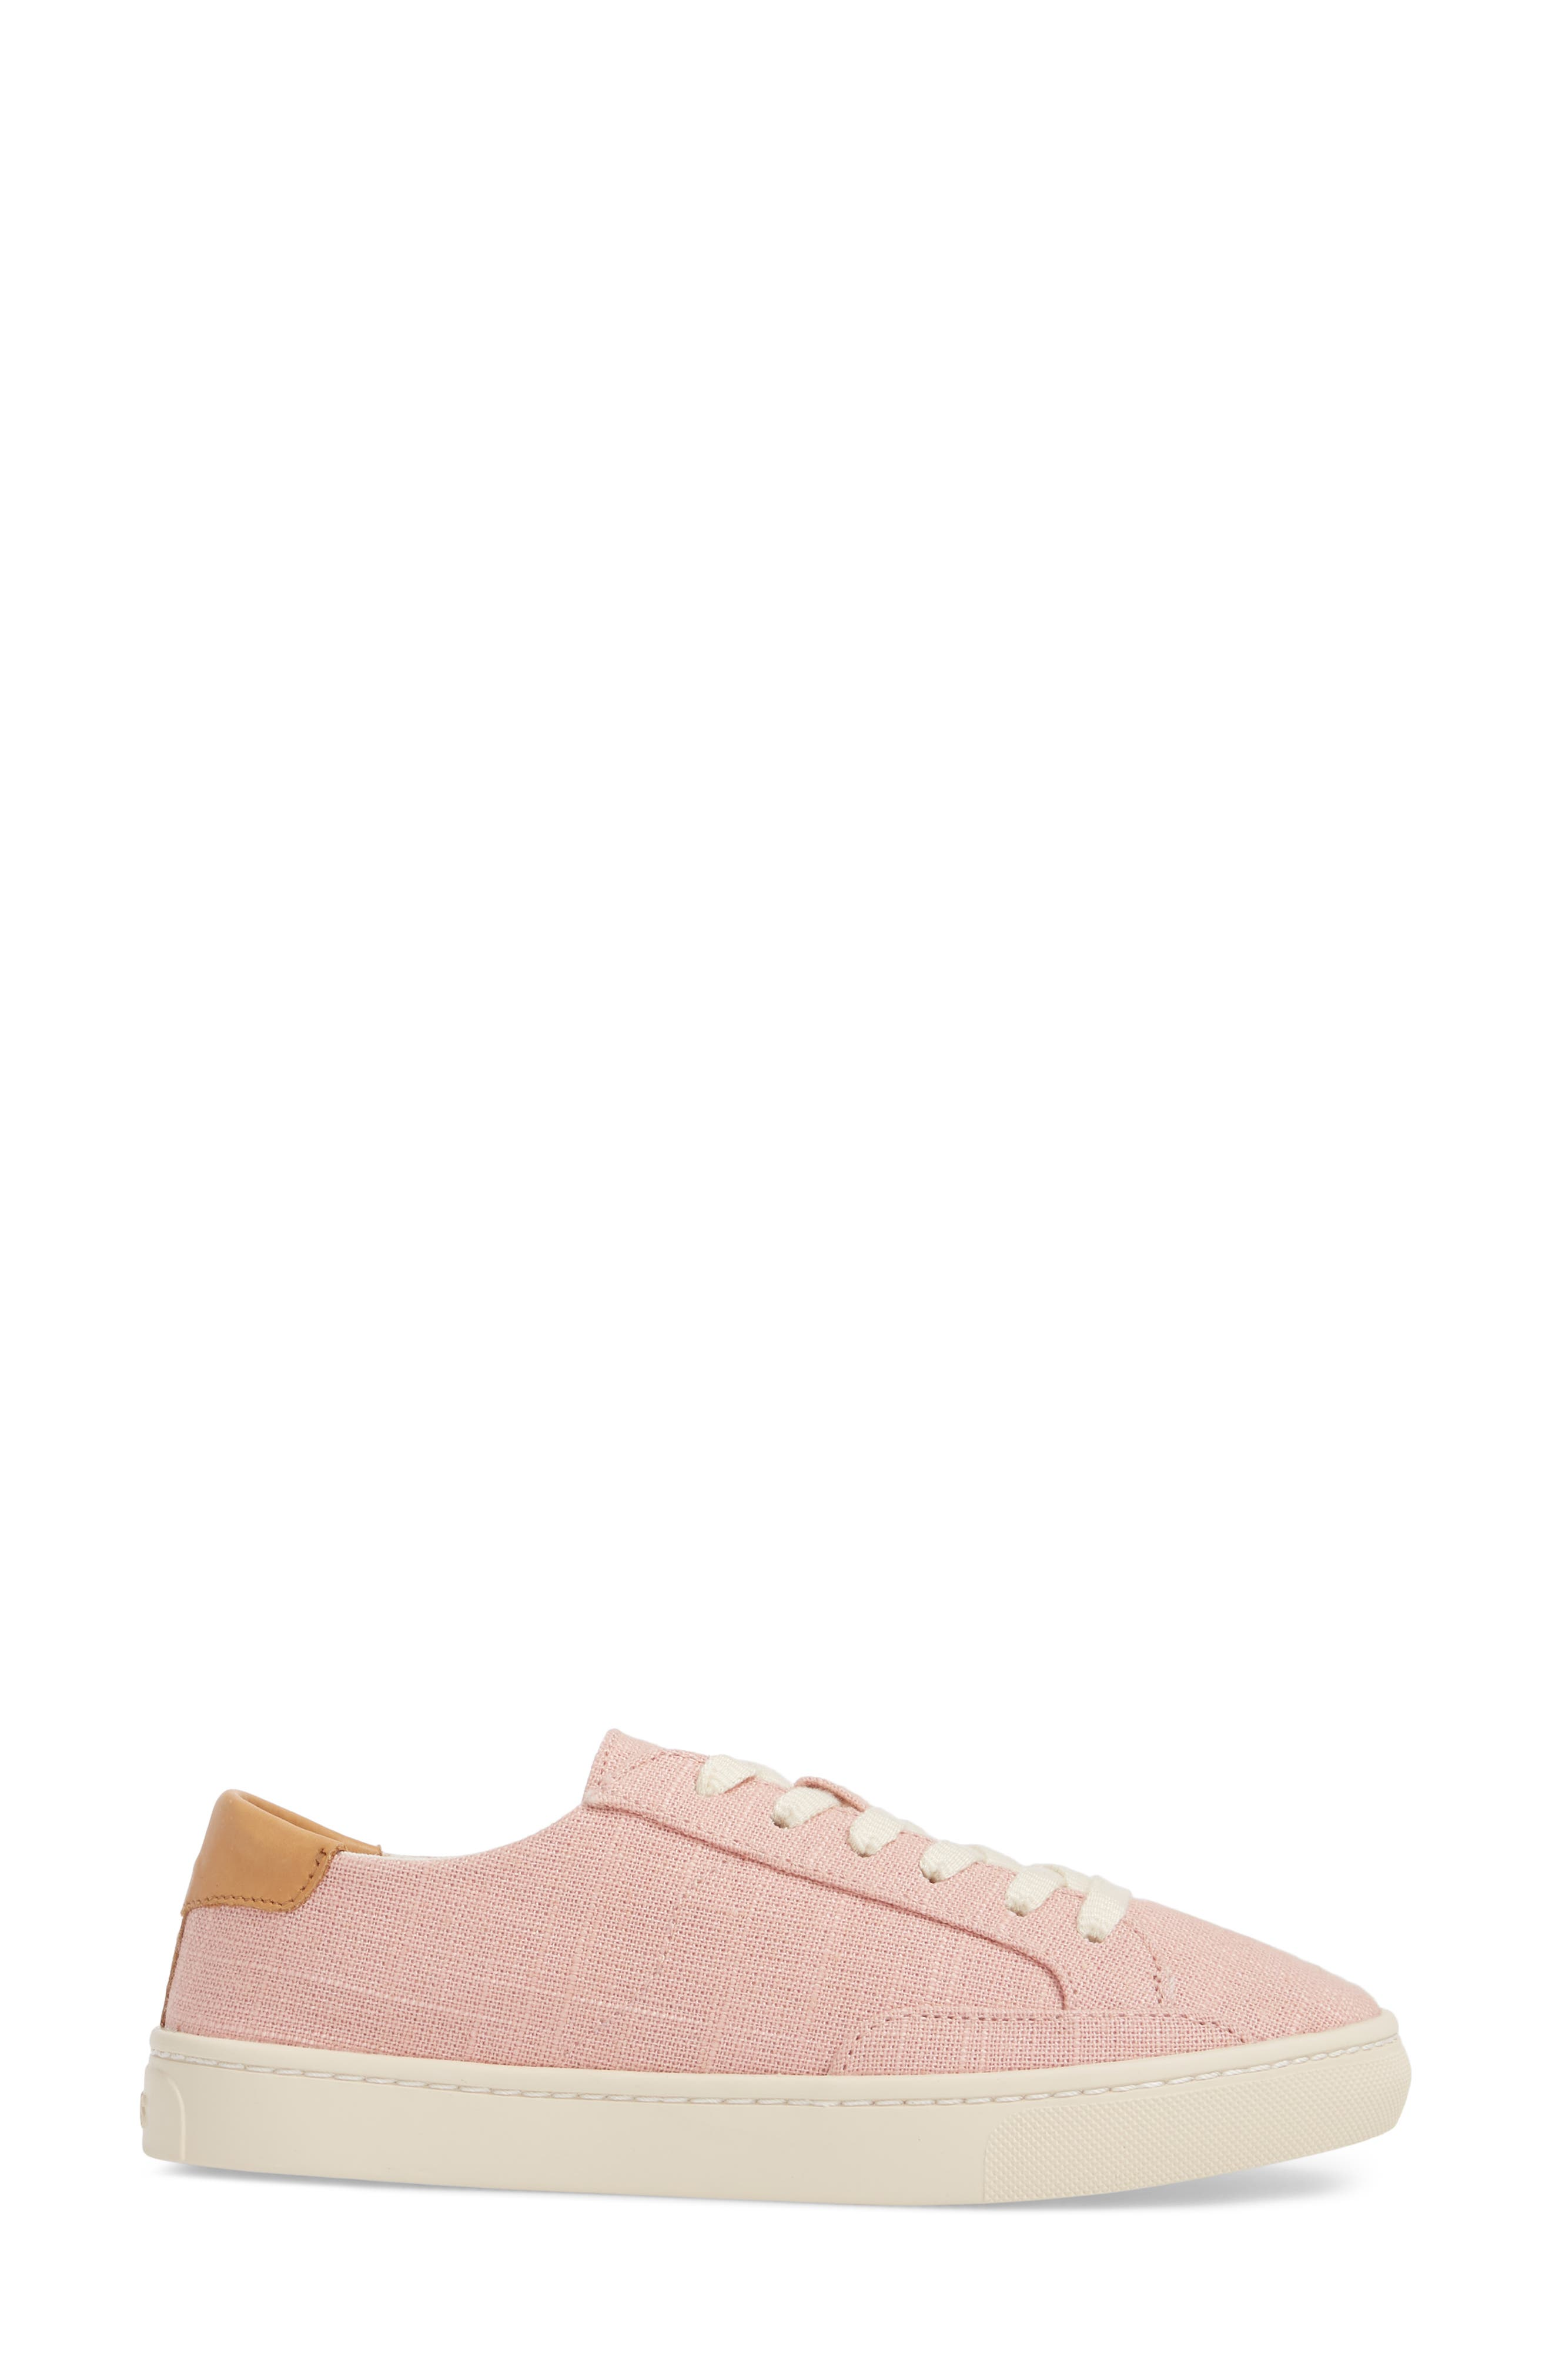 Ibiza Sneaker,                             Alternate thumbnail 3, color,                             Dusty Rose Fabric